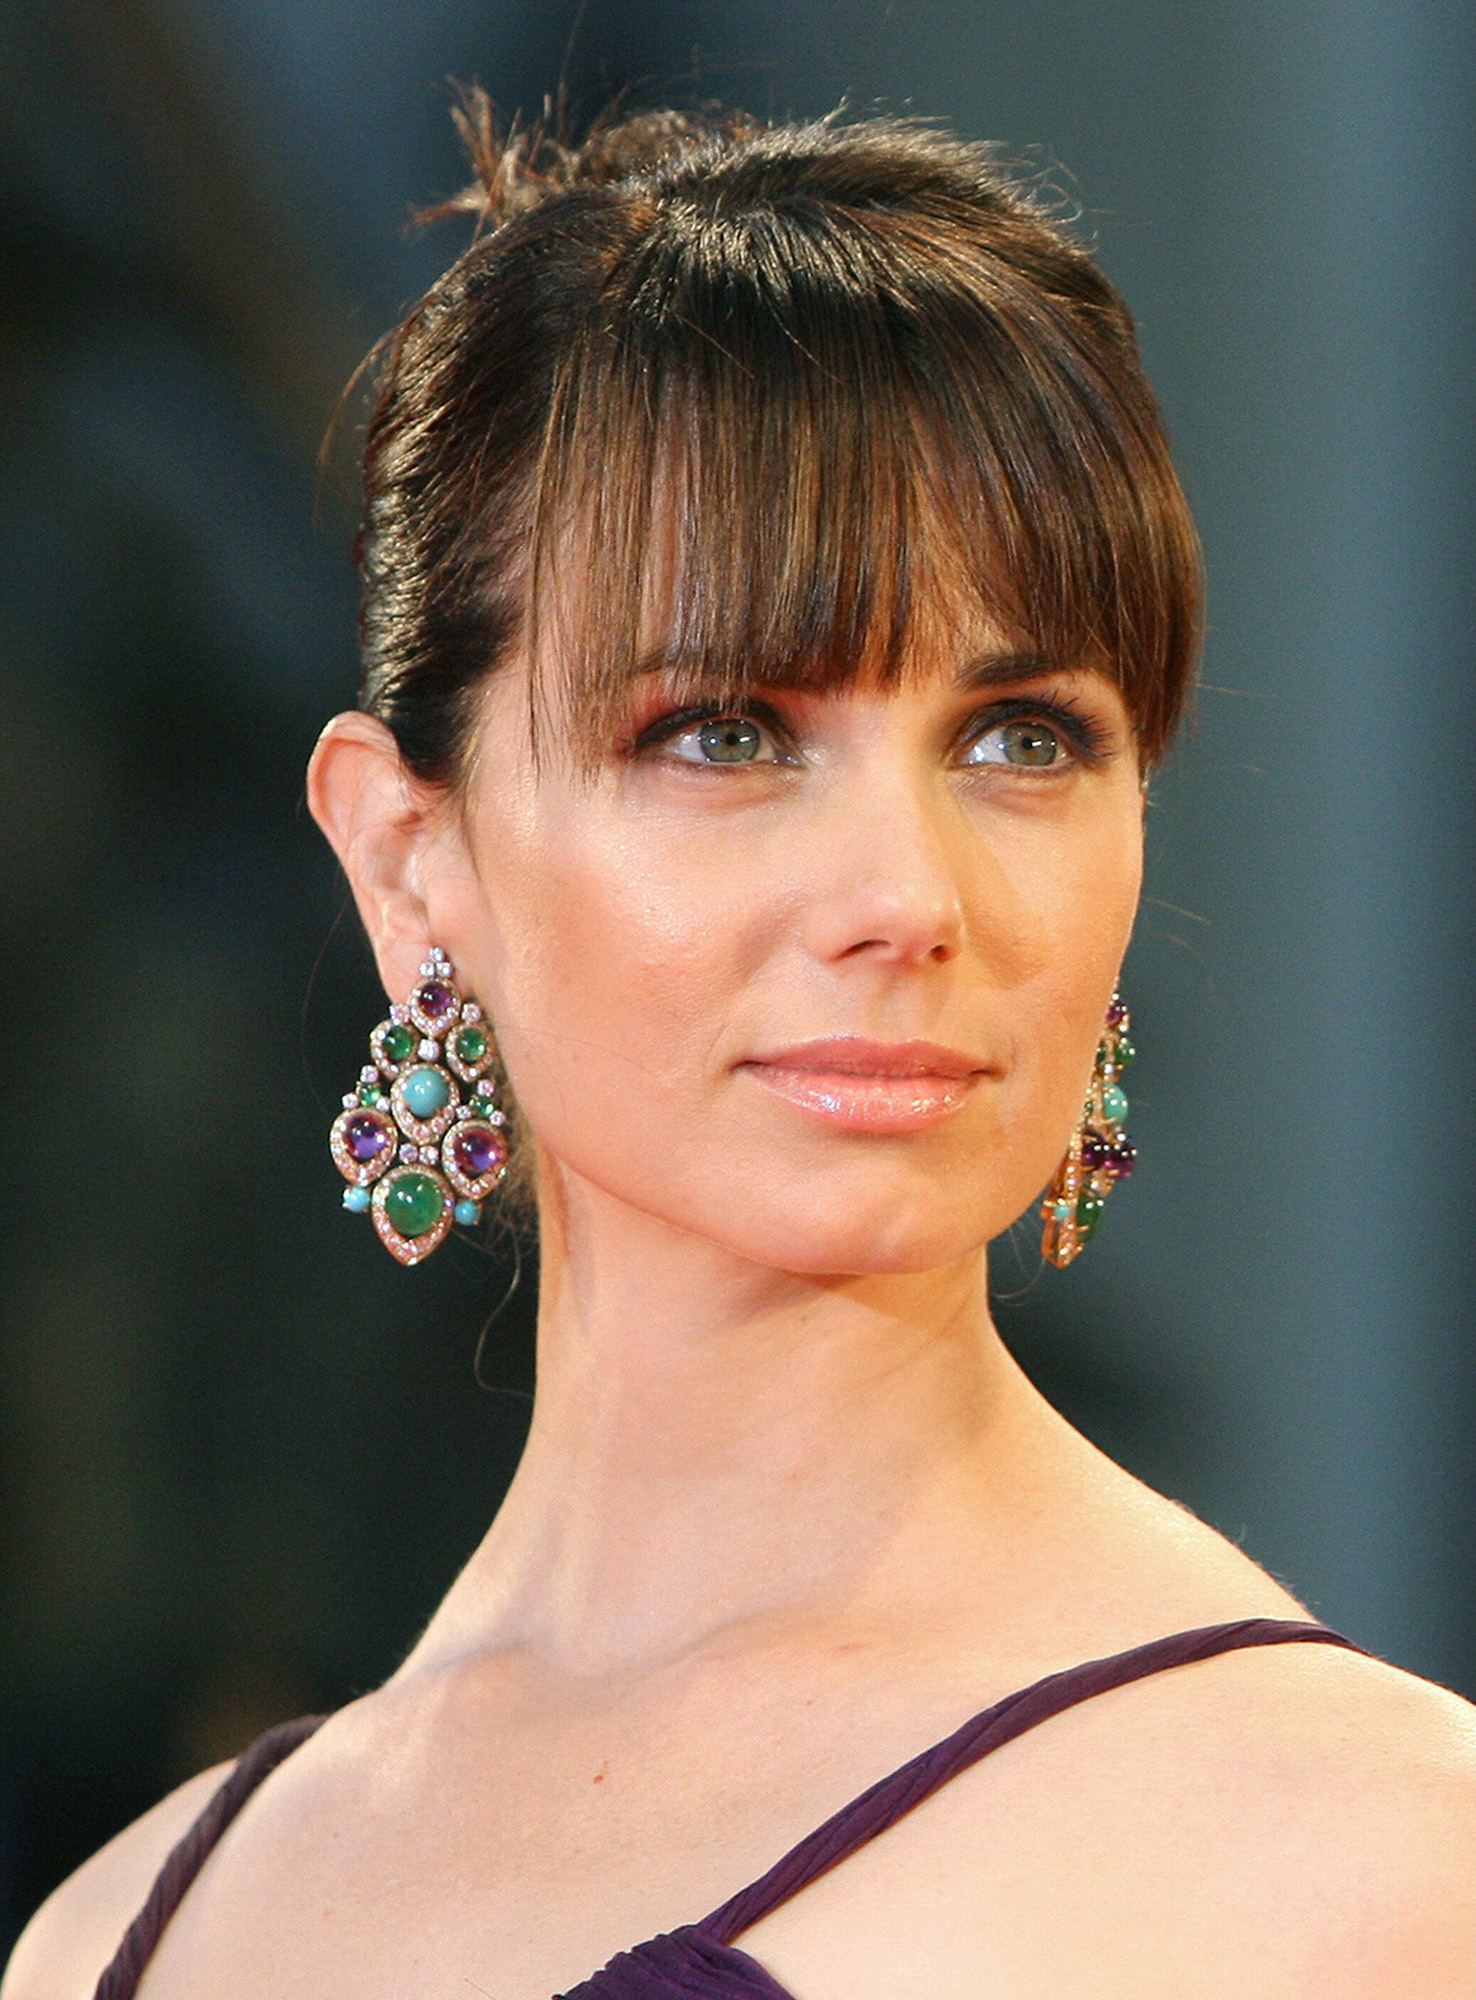 mia kirshner private life